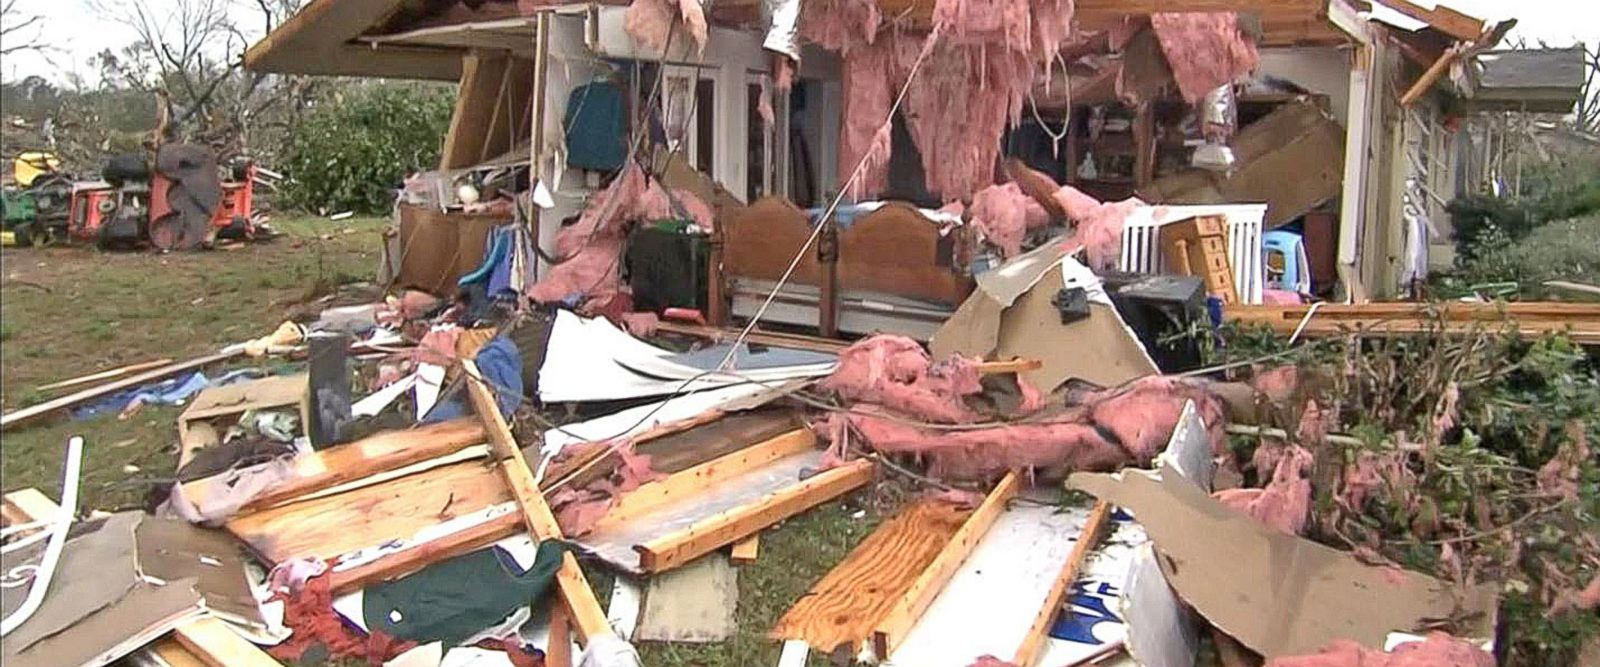 VIDEO: Deadly Tornadoes Slam the South